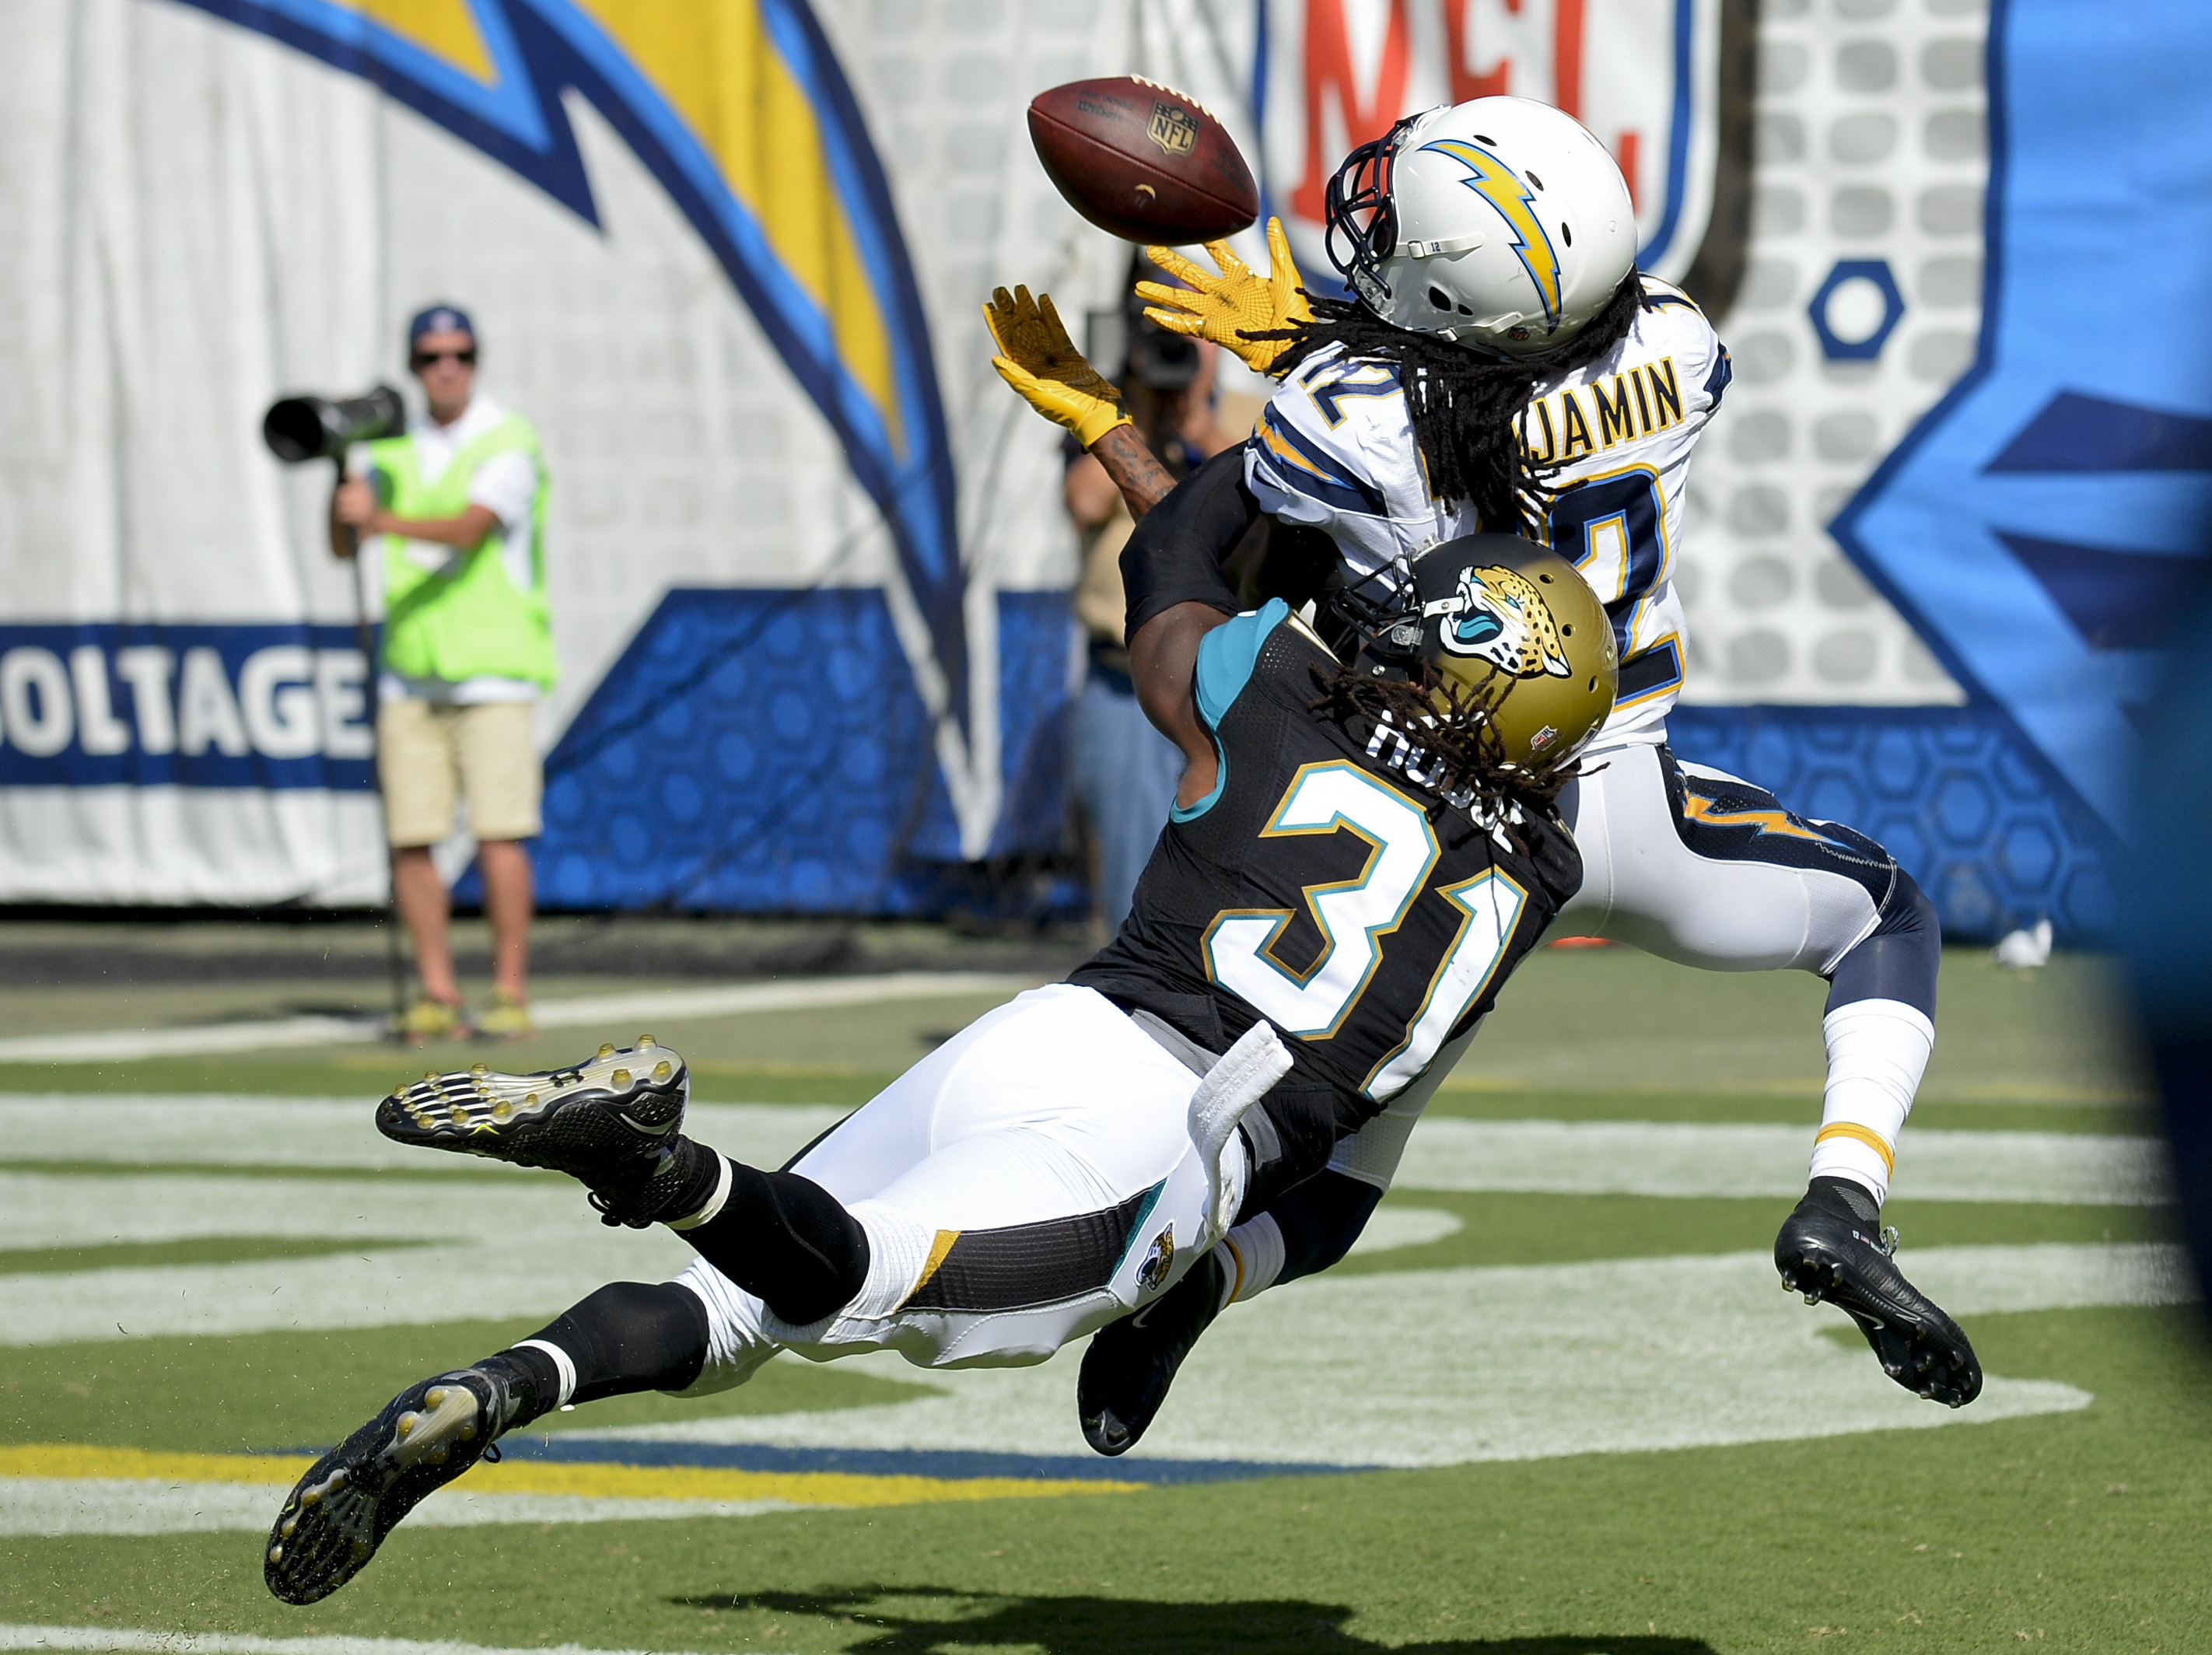 San Diego Chargers wide receiver Travis Benjamin makes a touchdown catch as Jacksonville Jaguars cornerback Davon House (31) defends during the second half of an NFL football game, Sunday, Sept. 18, 2016, in San Diego. (AP Photo/Denis Poroy)